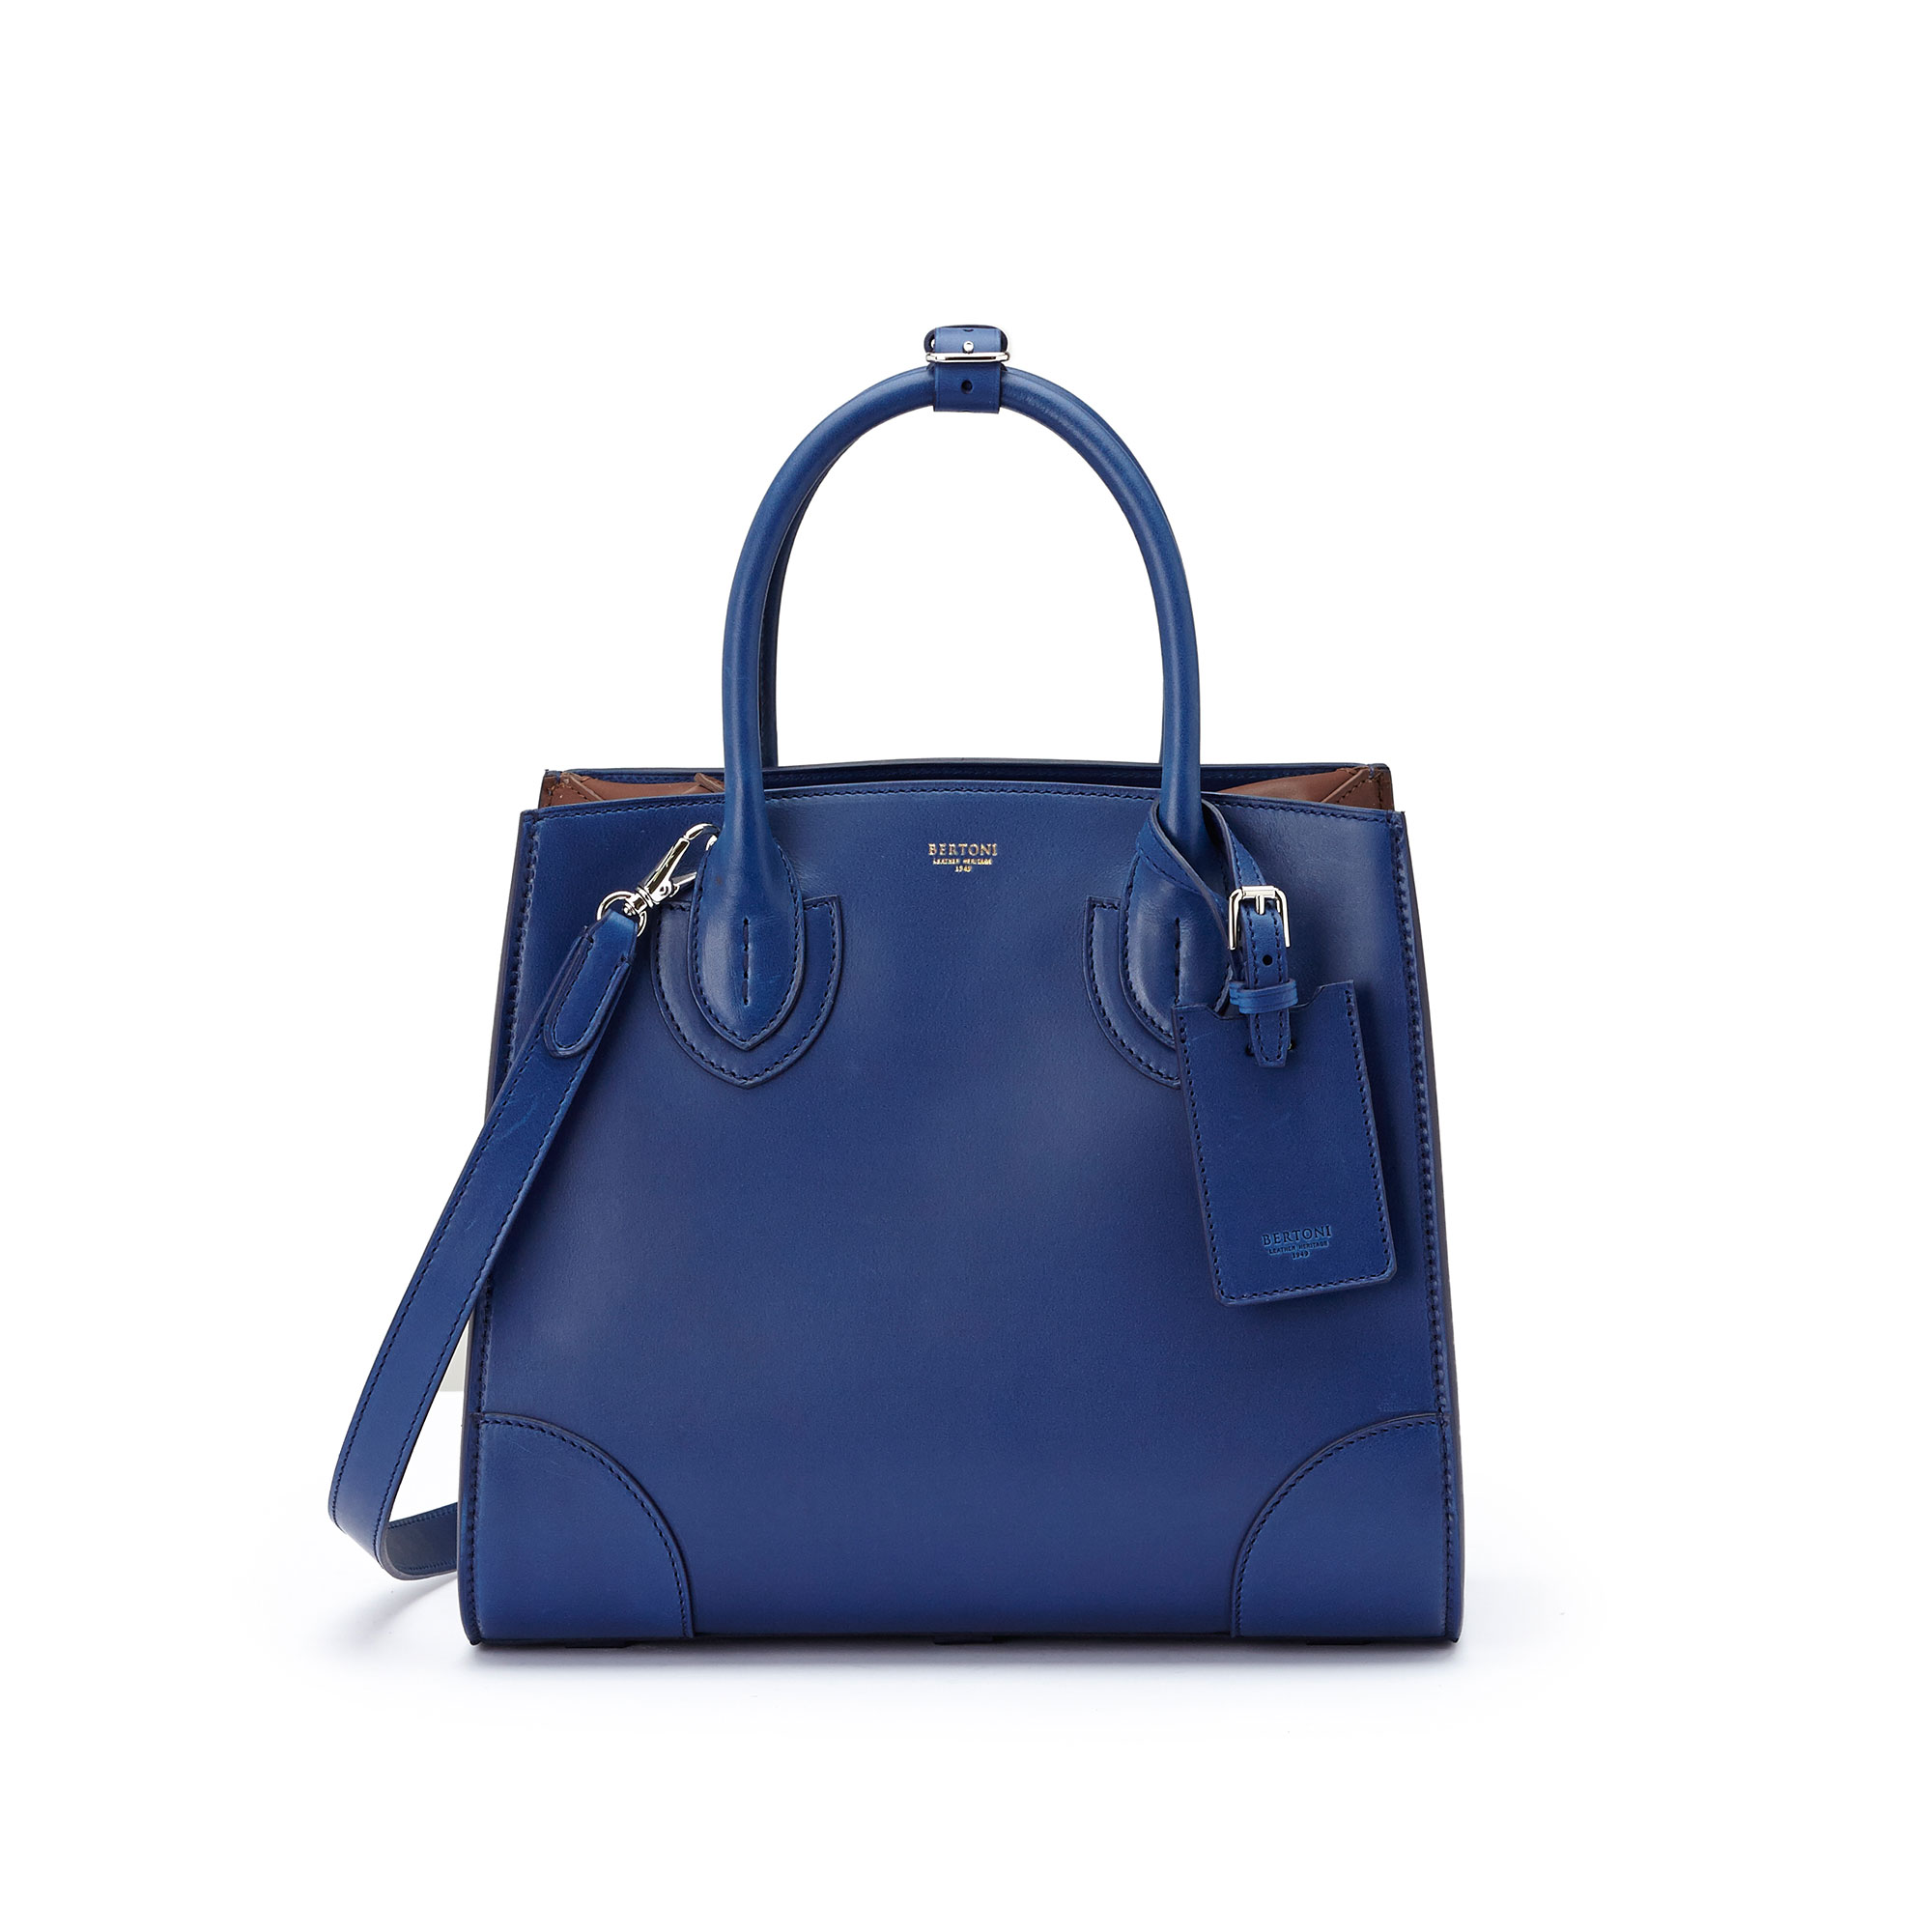 The blue, terrabruciata and brown french calf Darcy medium bag by Bertoni 1949 01